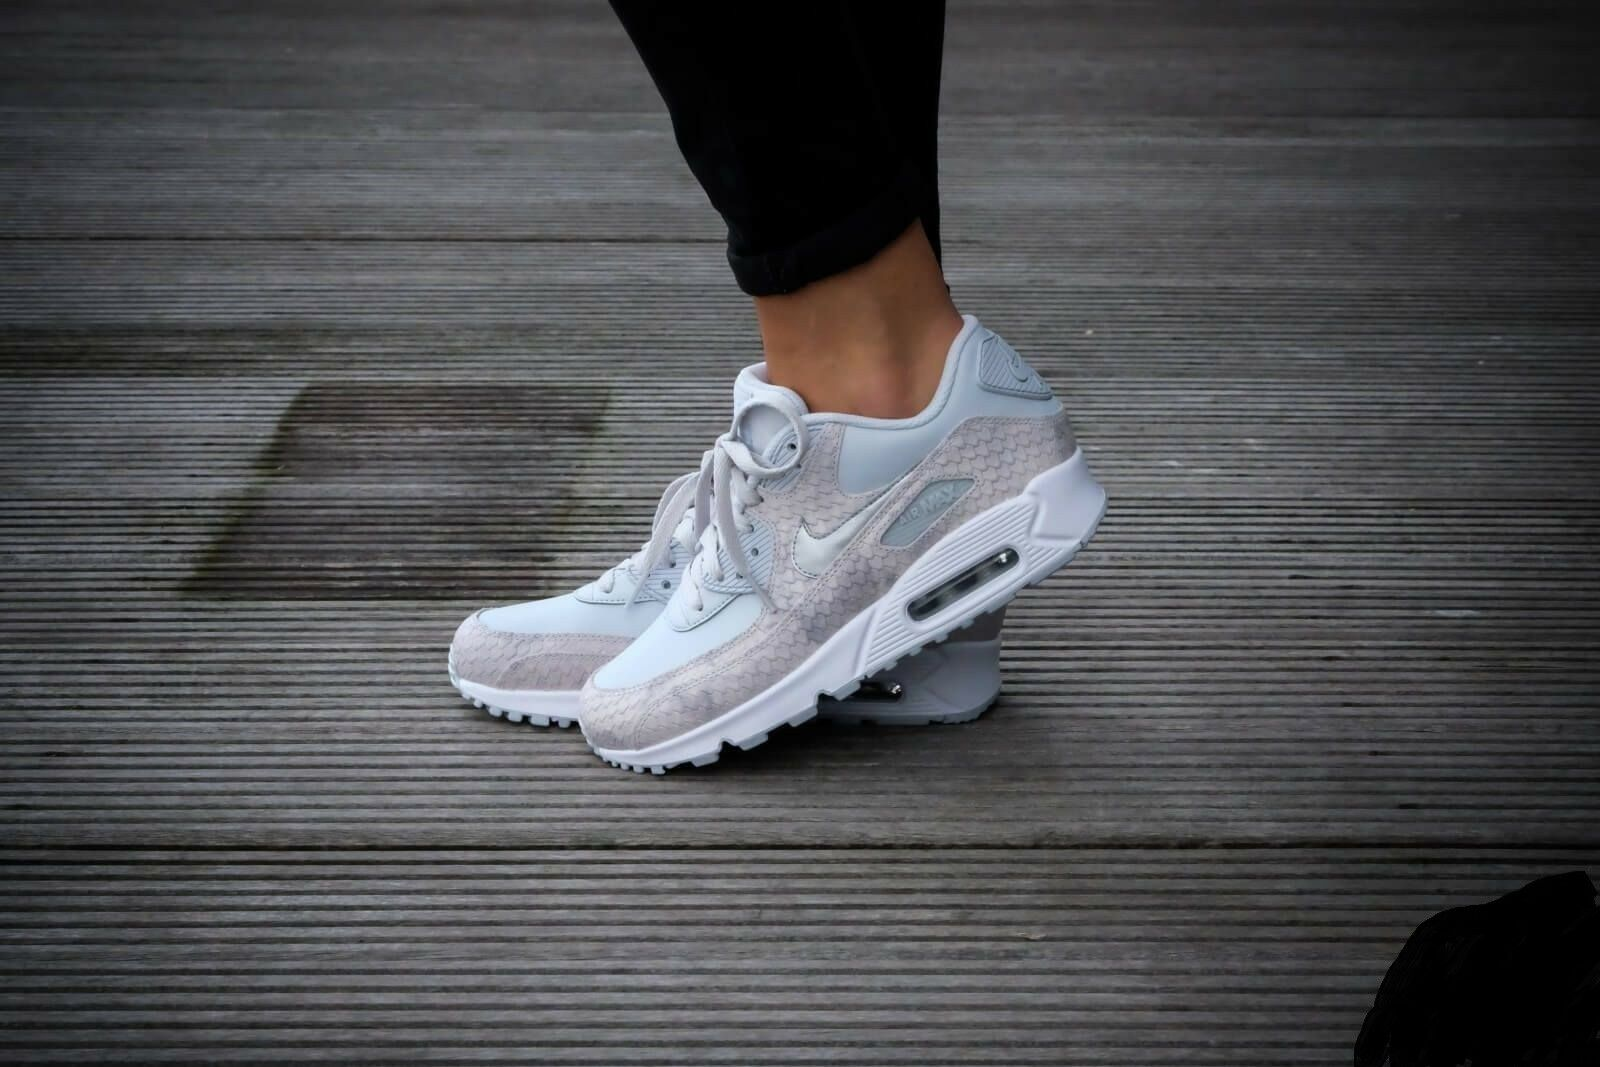 reputable site 7a462 6b606 Nike Air Max 90 Premium PRM Pure Platinum/white WMN Sz 6.5 896497 004